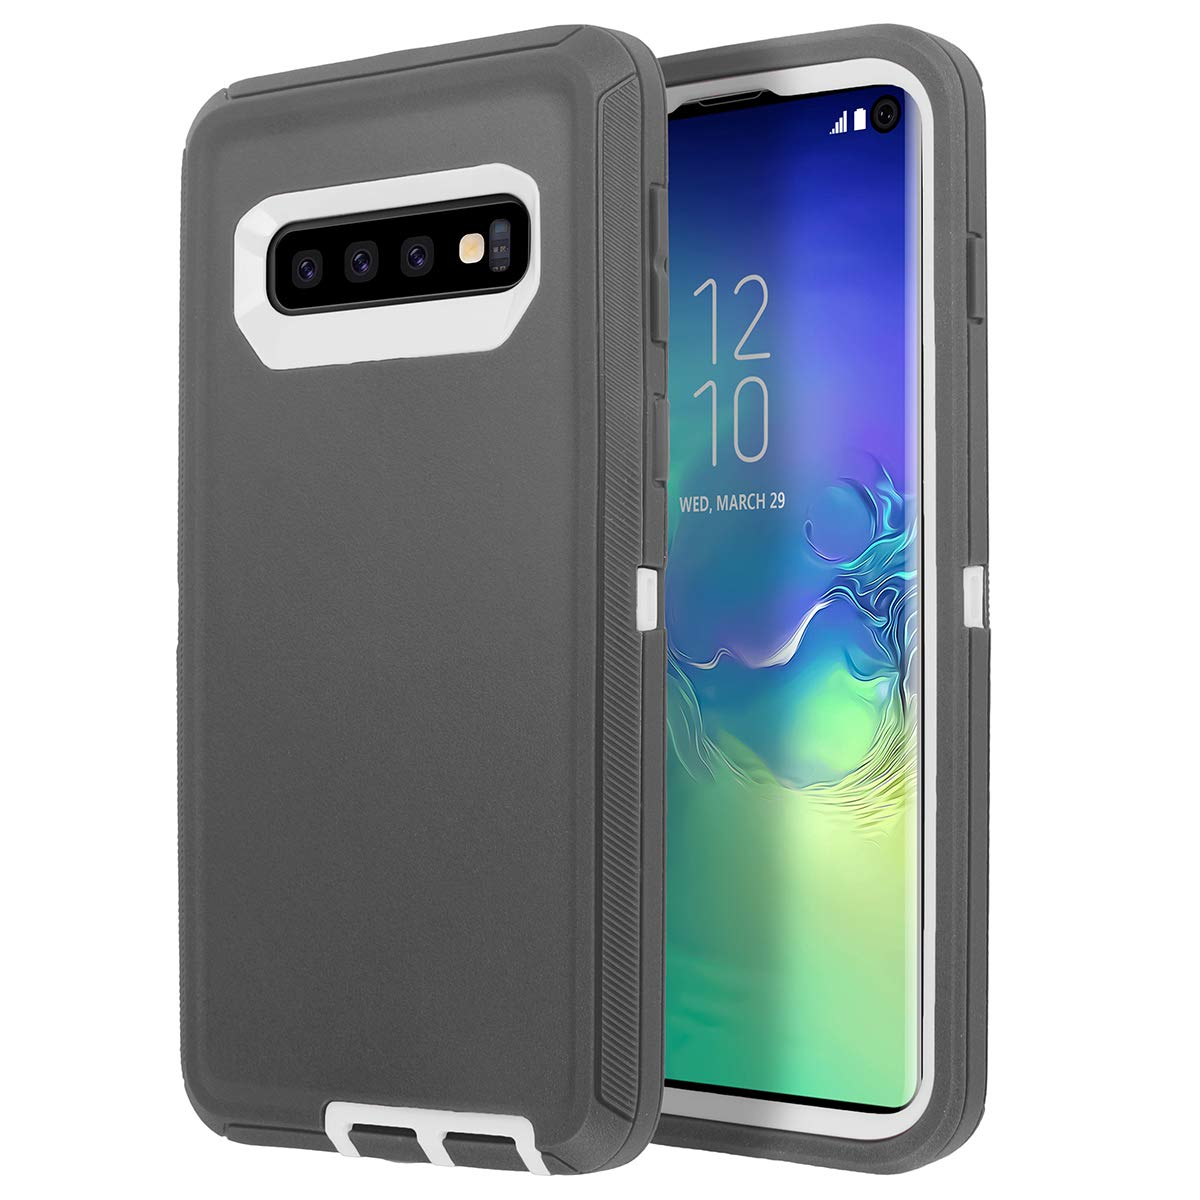 Heavy Duty 3 in 1 Scratch Resistant, Dropproof, Soft TPU+ Hard PC Hybrid Truly Shockproof Dustproof Water-Resistance Armor Protective Case